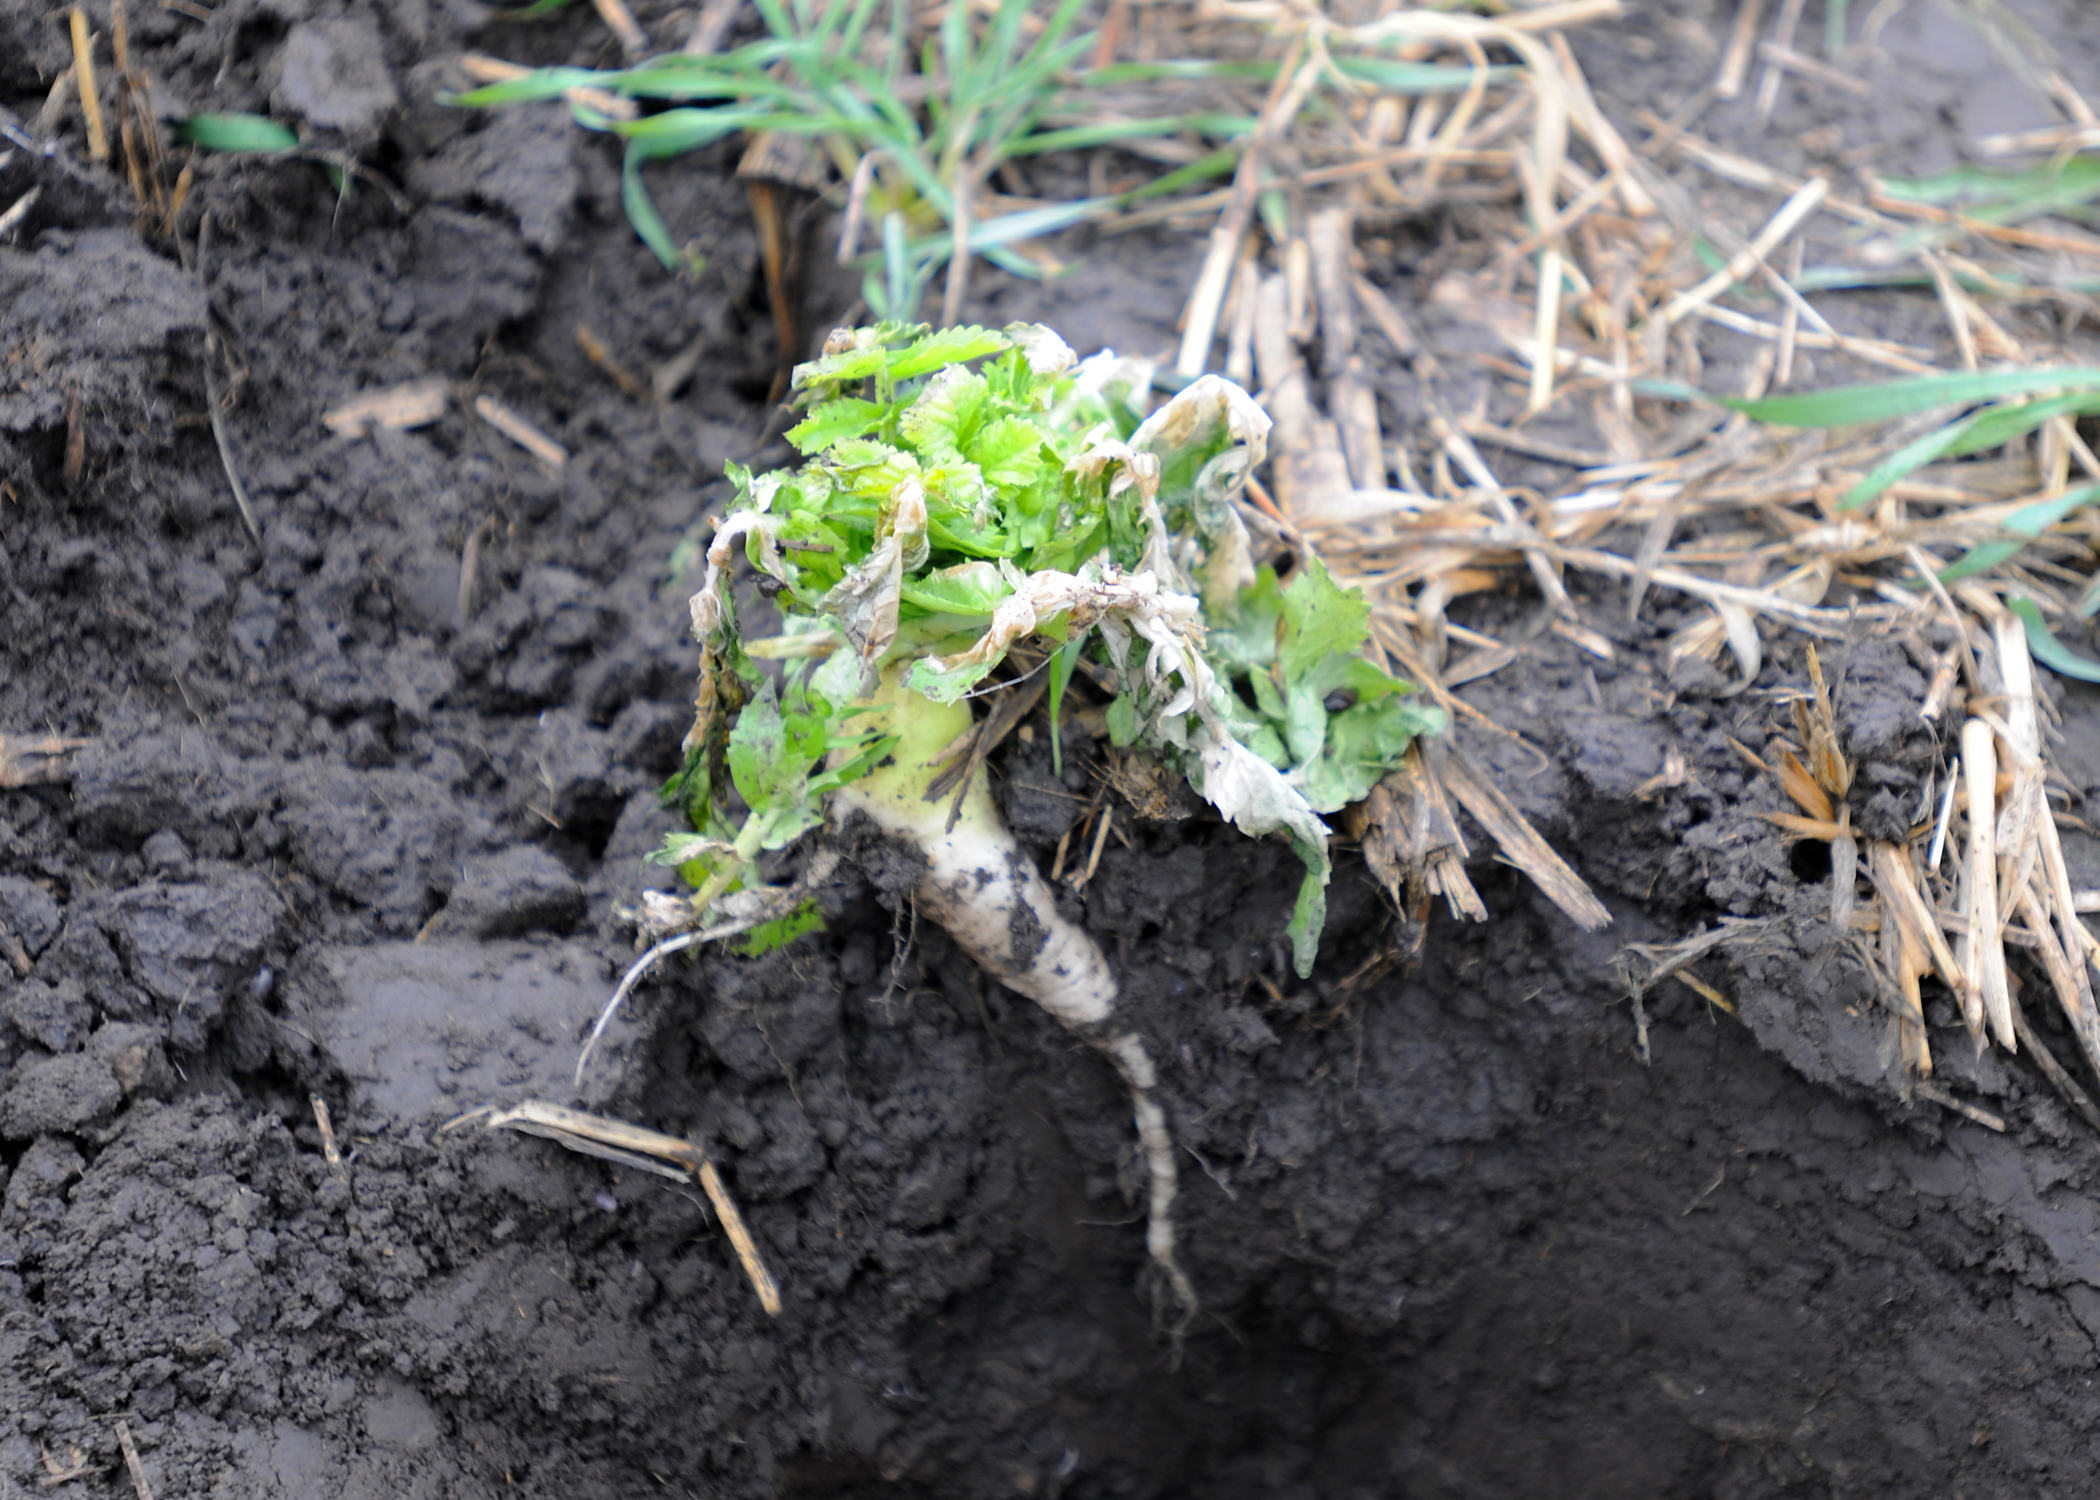 The small tillage radish still has a long tap root to allow water infiltration.